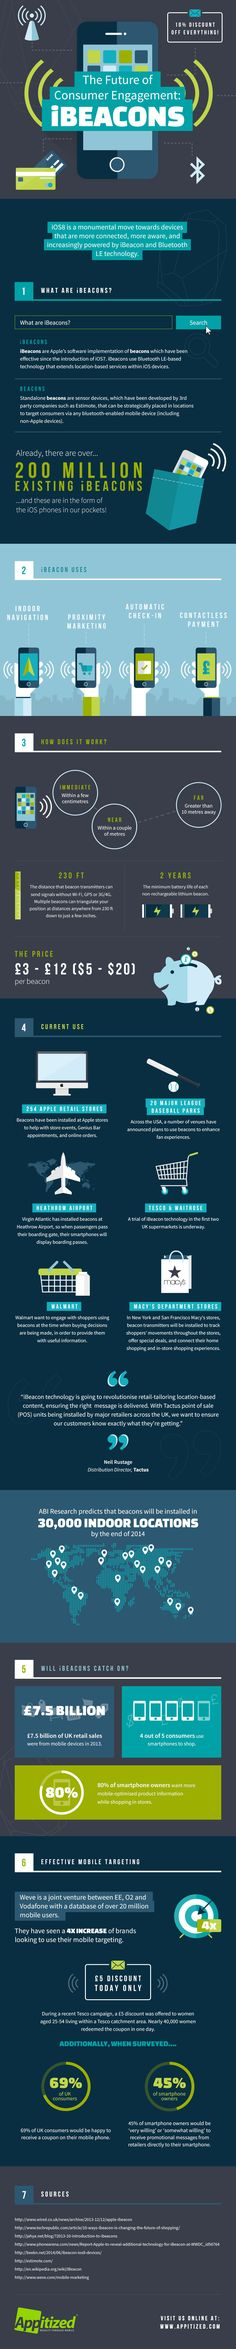 iBeacons: The Future of Consumer Engagement #infographic #Marketing #Technology